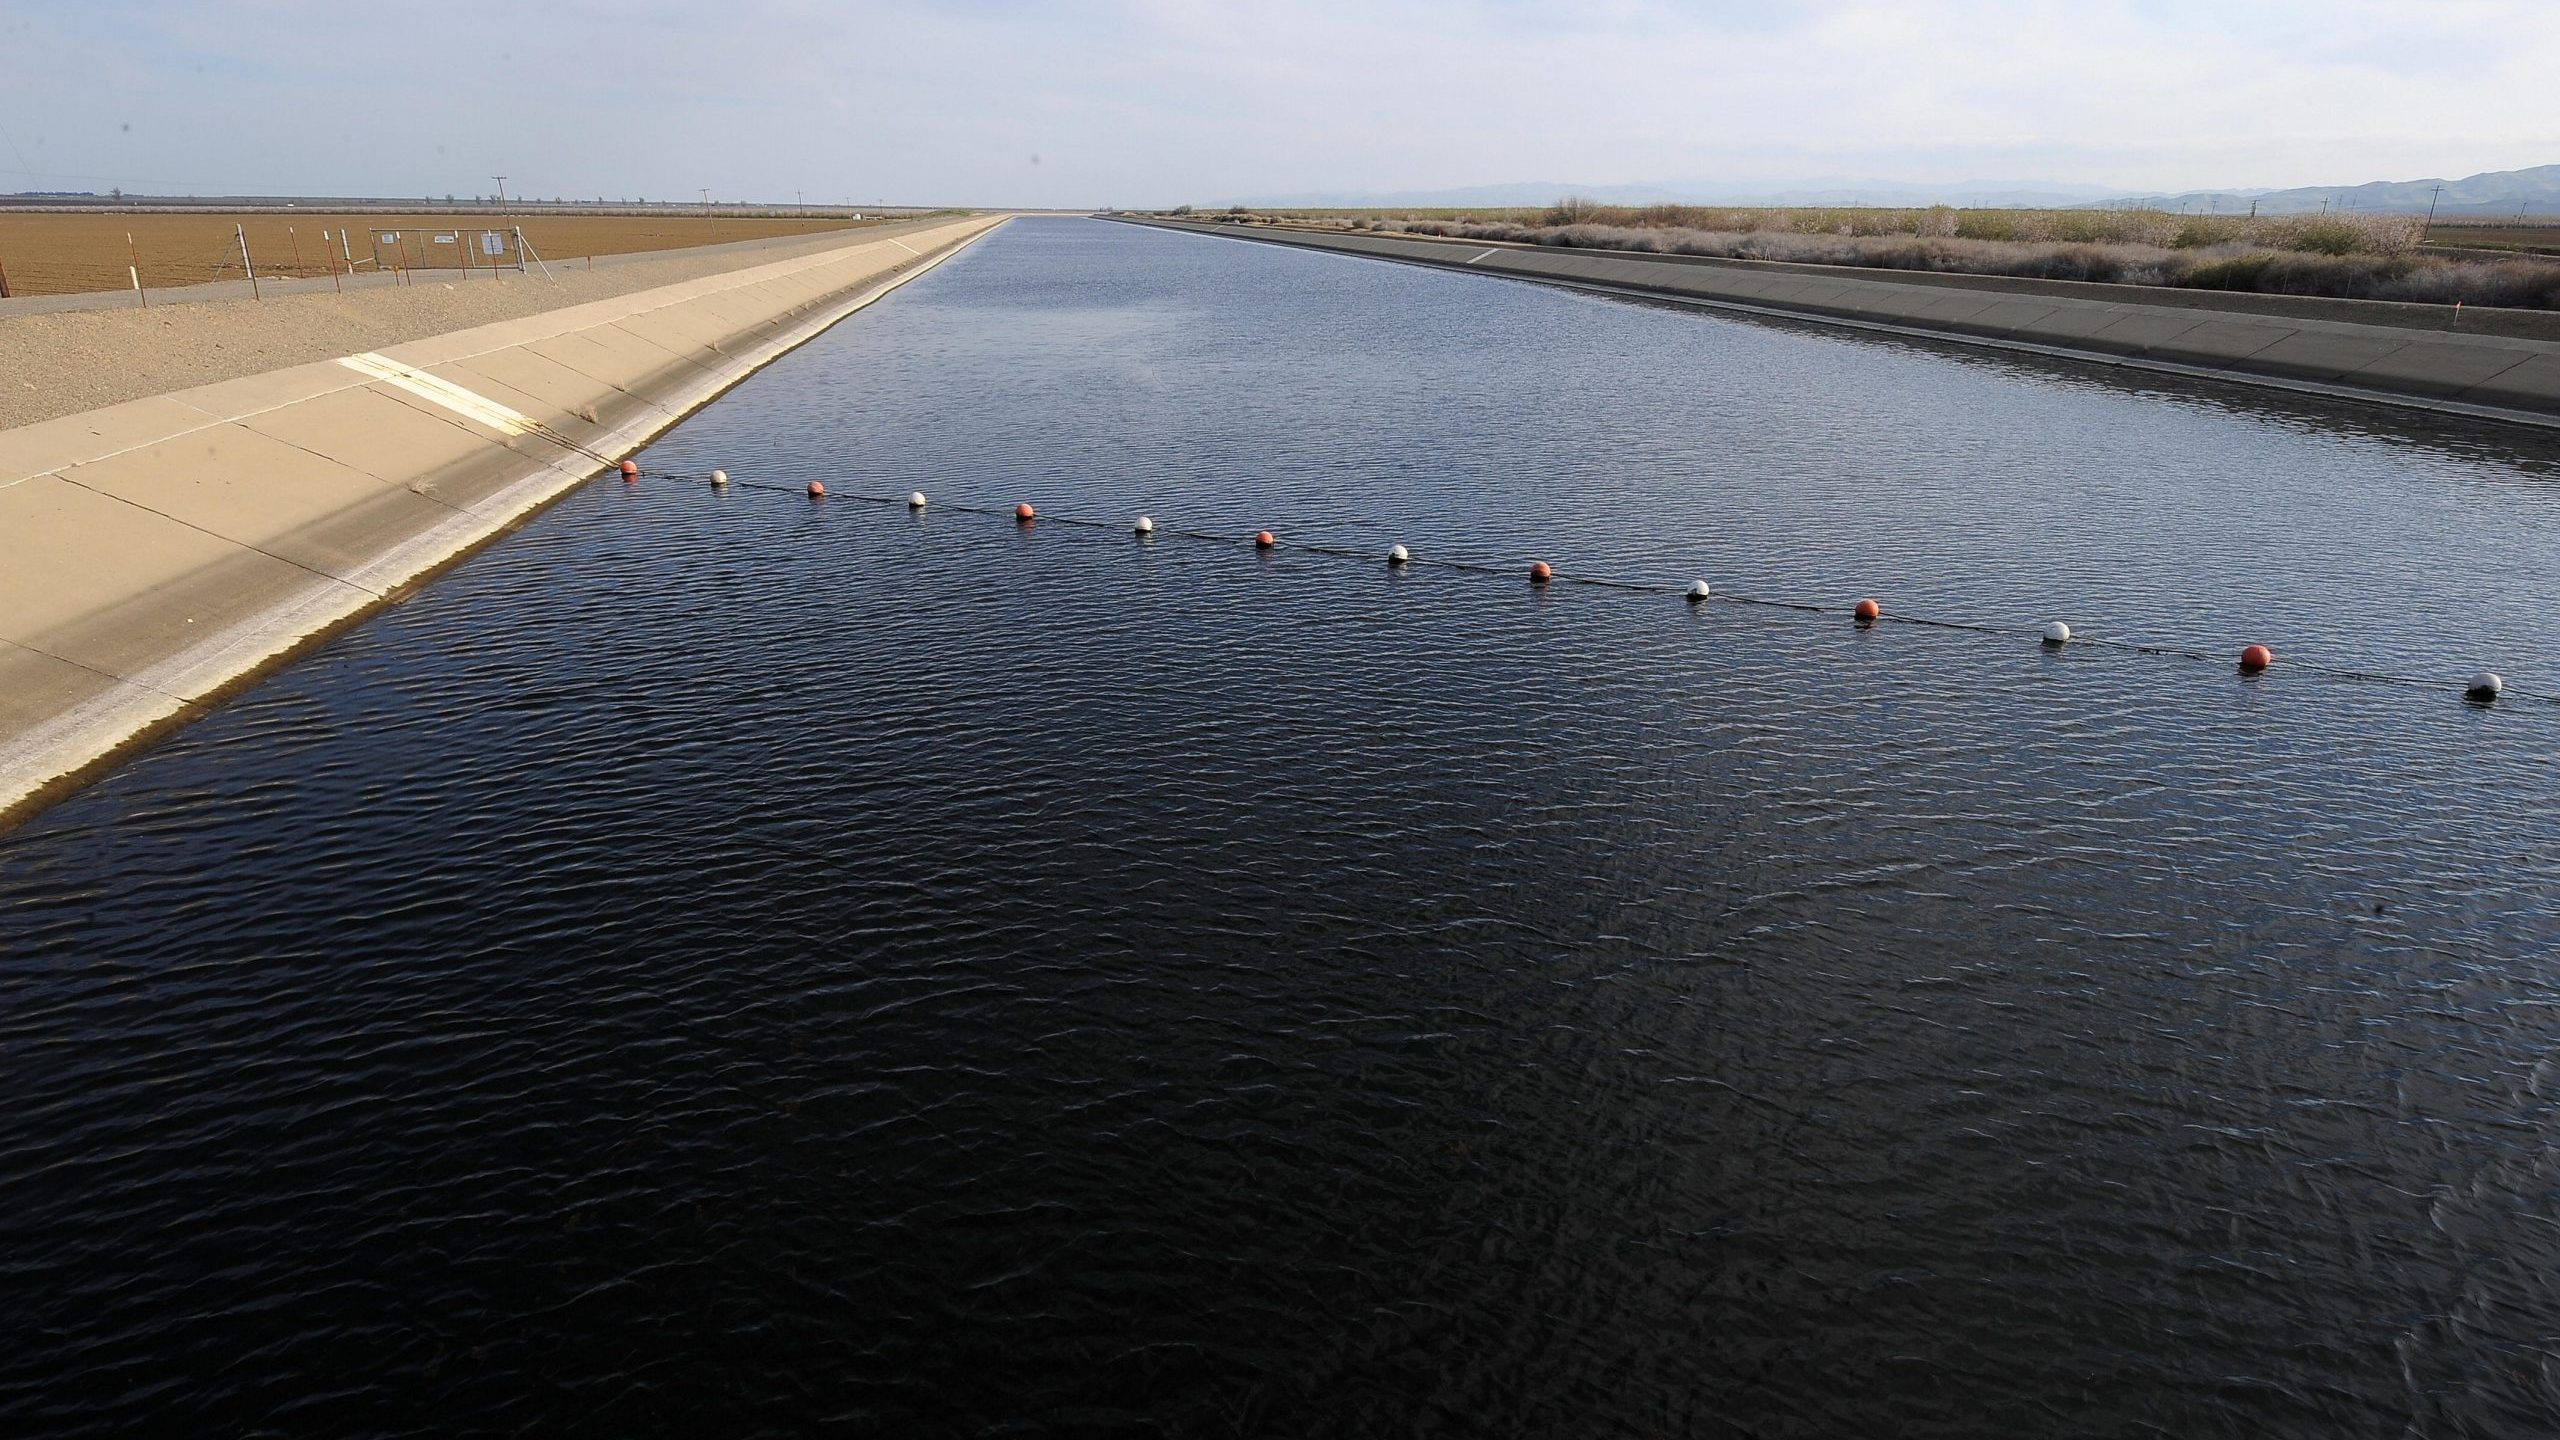 The California Aqueduct at Mendota carries water from the San Joaquin-Sacramento River Delta in the north to farms and cities in the central and southern part of the state on March 11, 2009. (Credit: Robyn Beck/AFP via Getty Images)